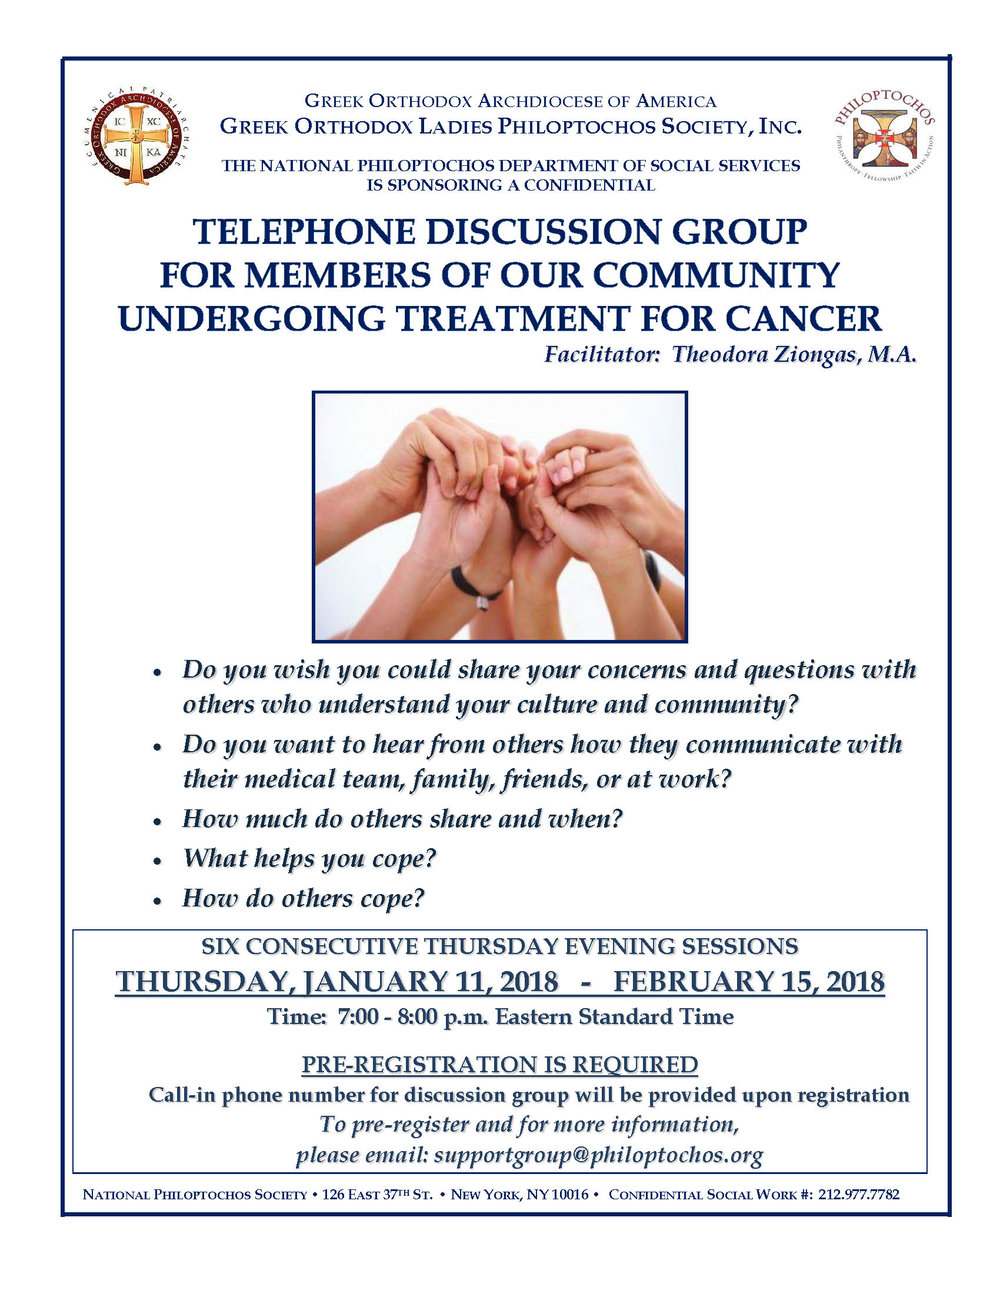 TELEPHONE CANCER SUPPORT GROUP_FLYER-FINAL 2.jpg